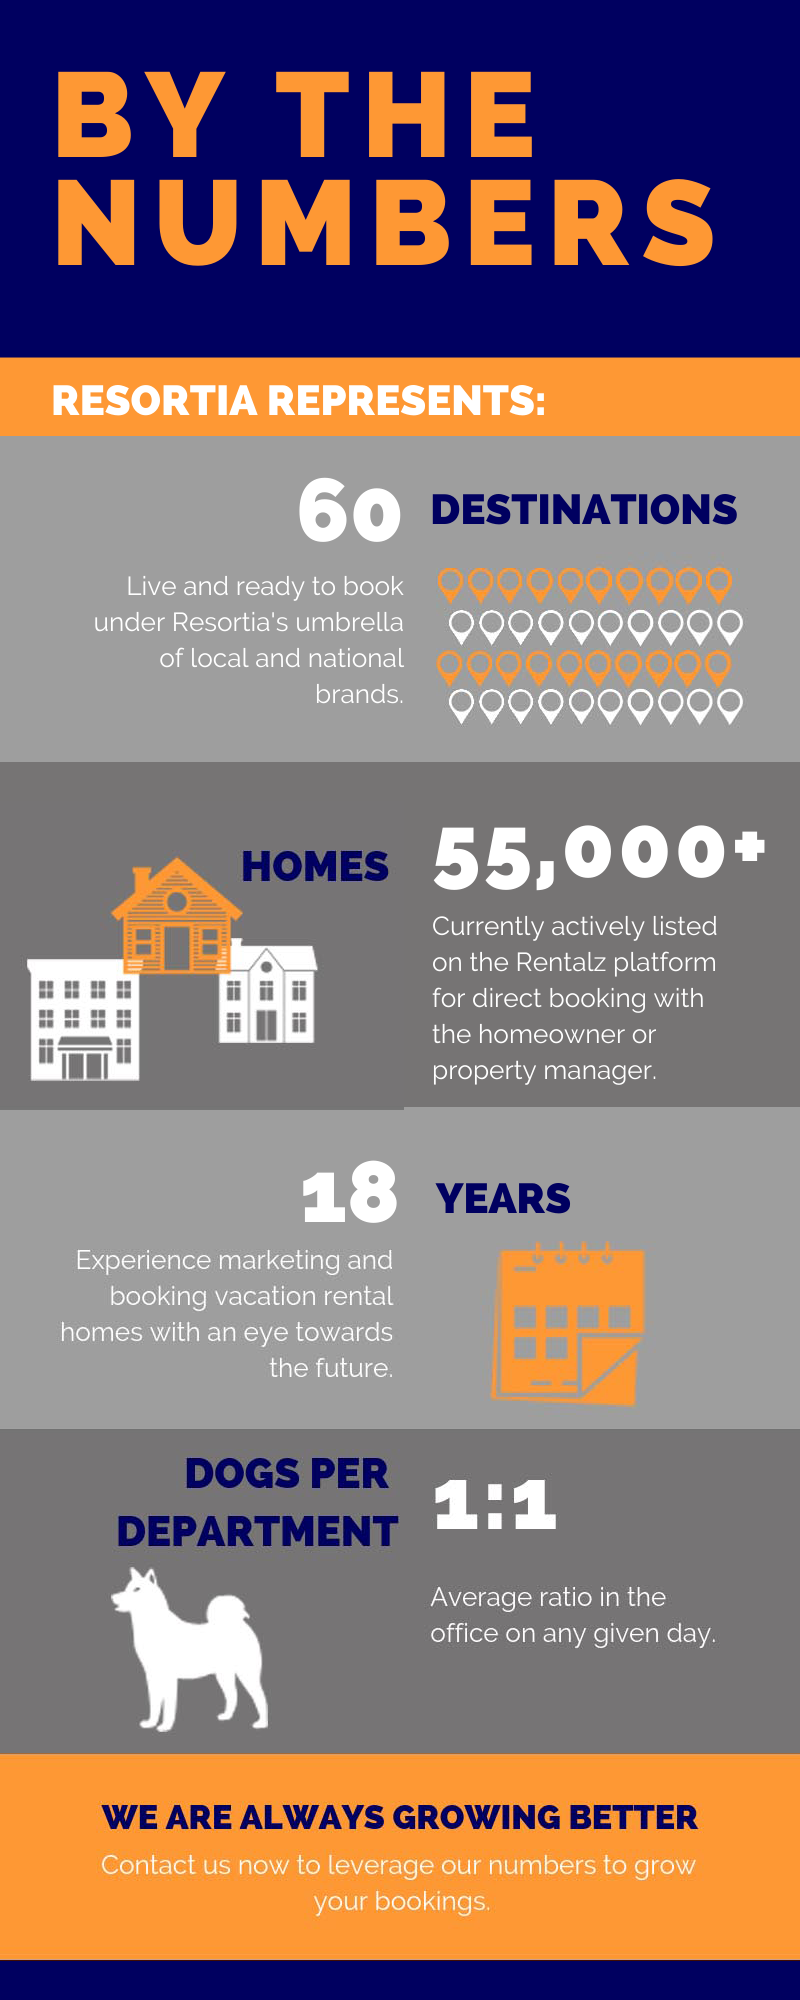 By The Numbers-resortia-2021